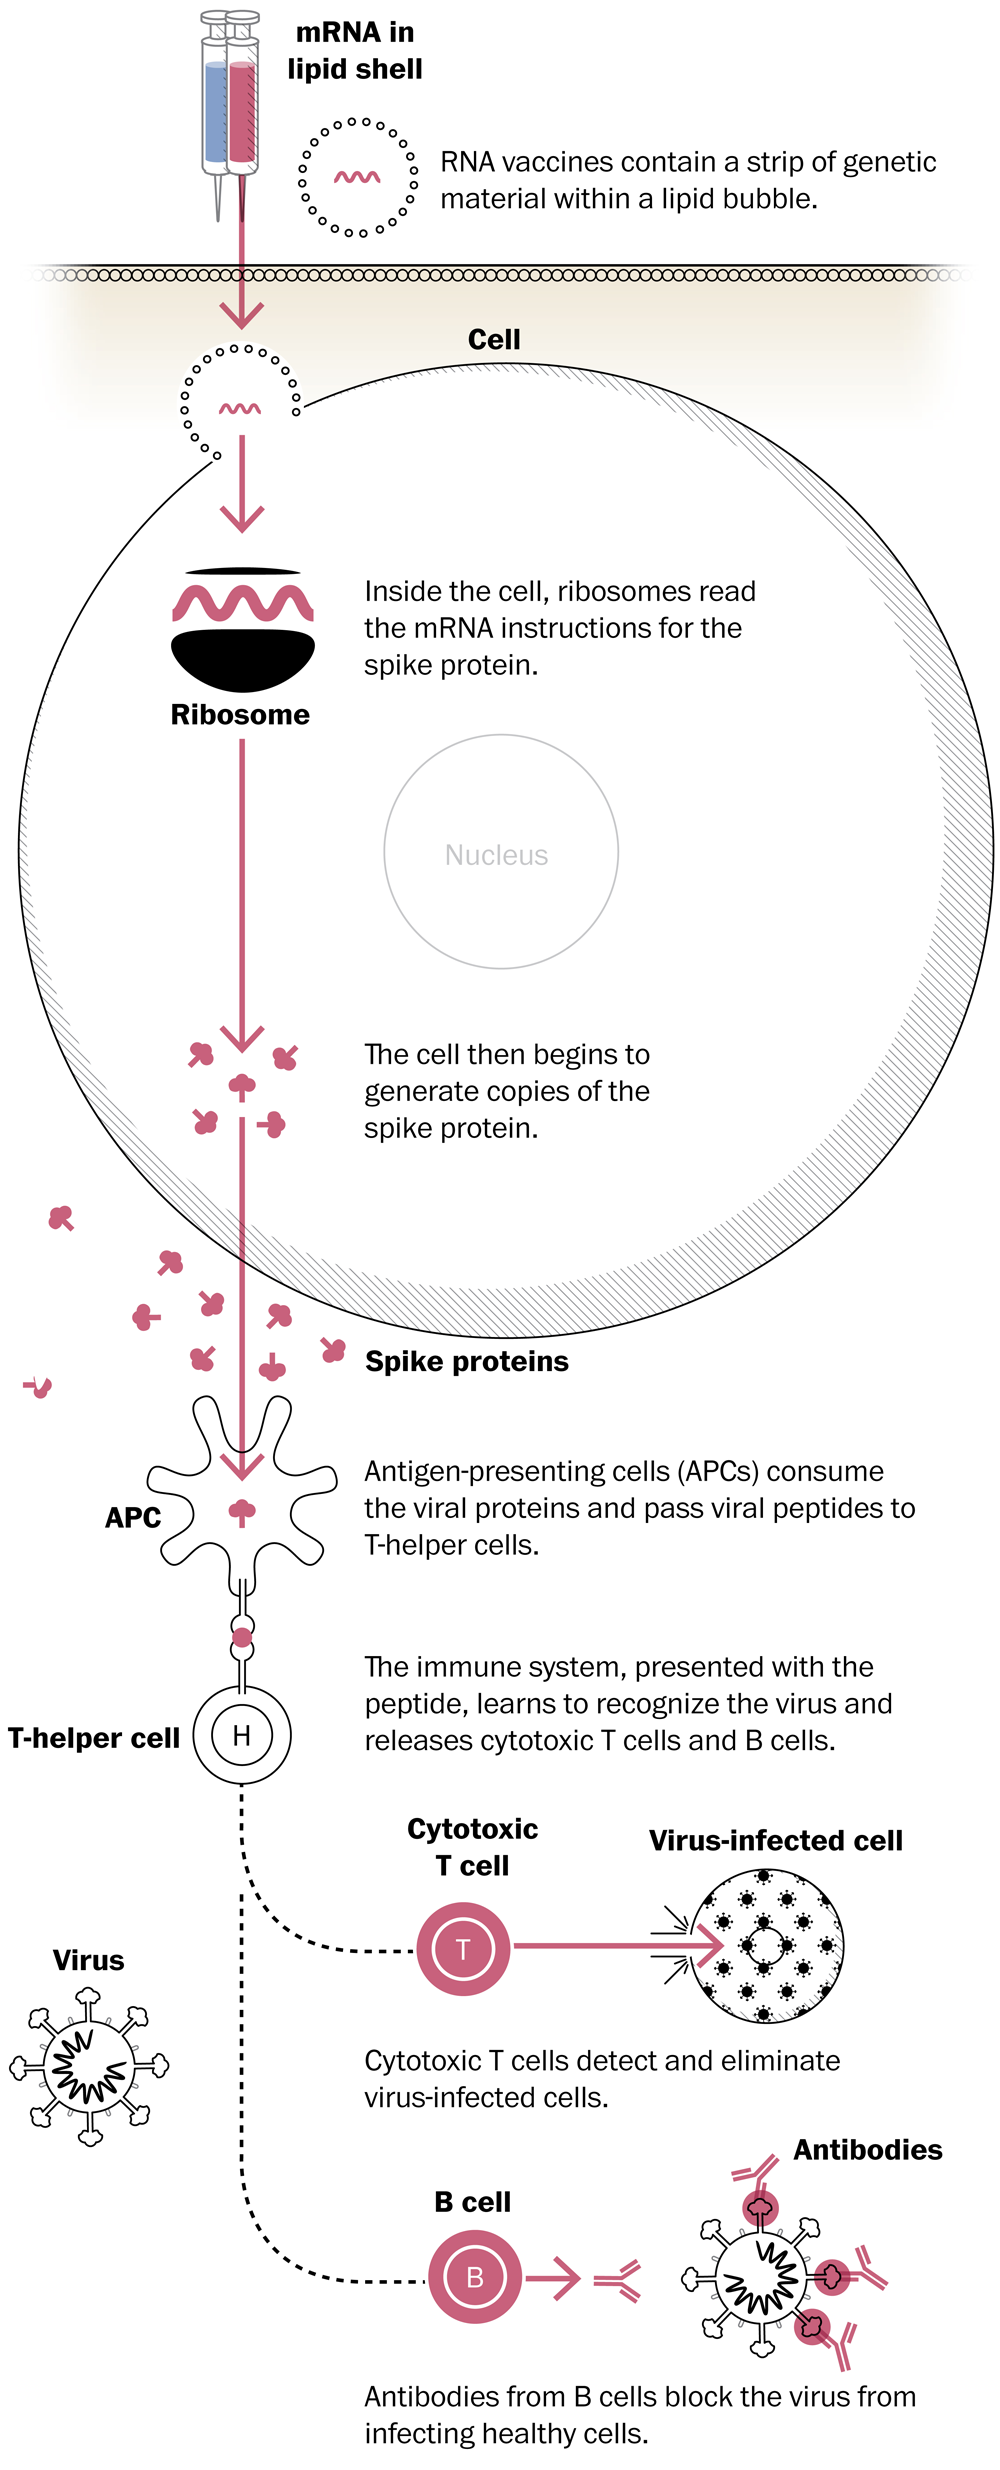 Visual diagram depicting how mRNA vaccines function